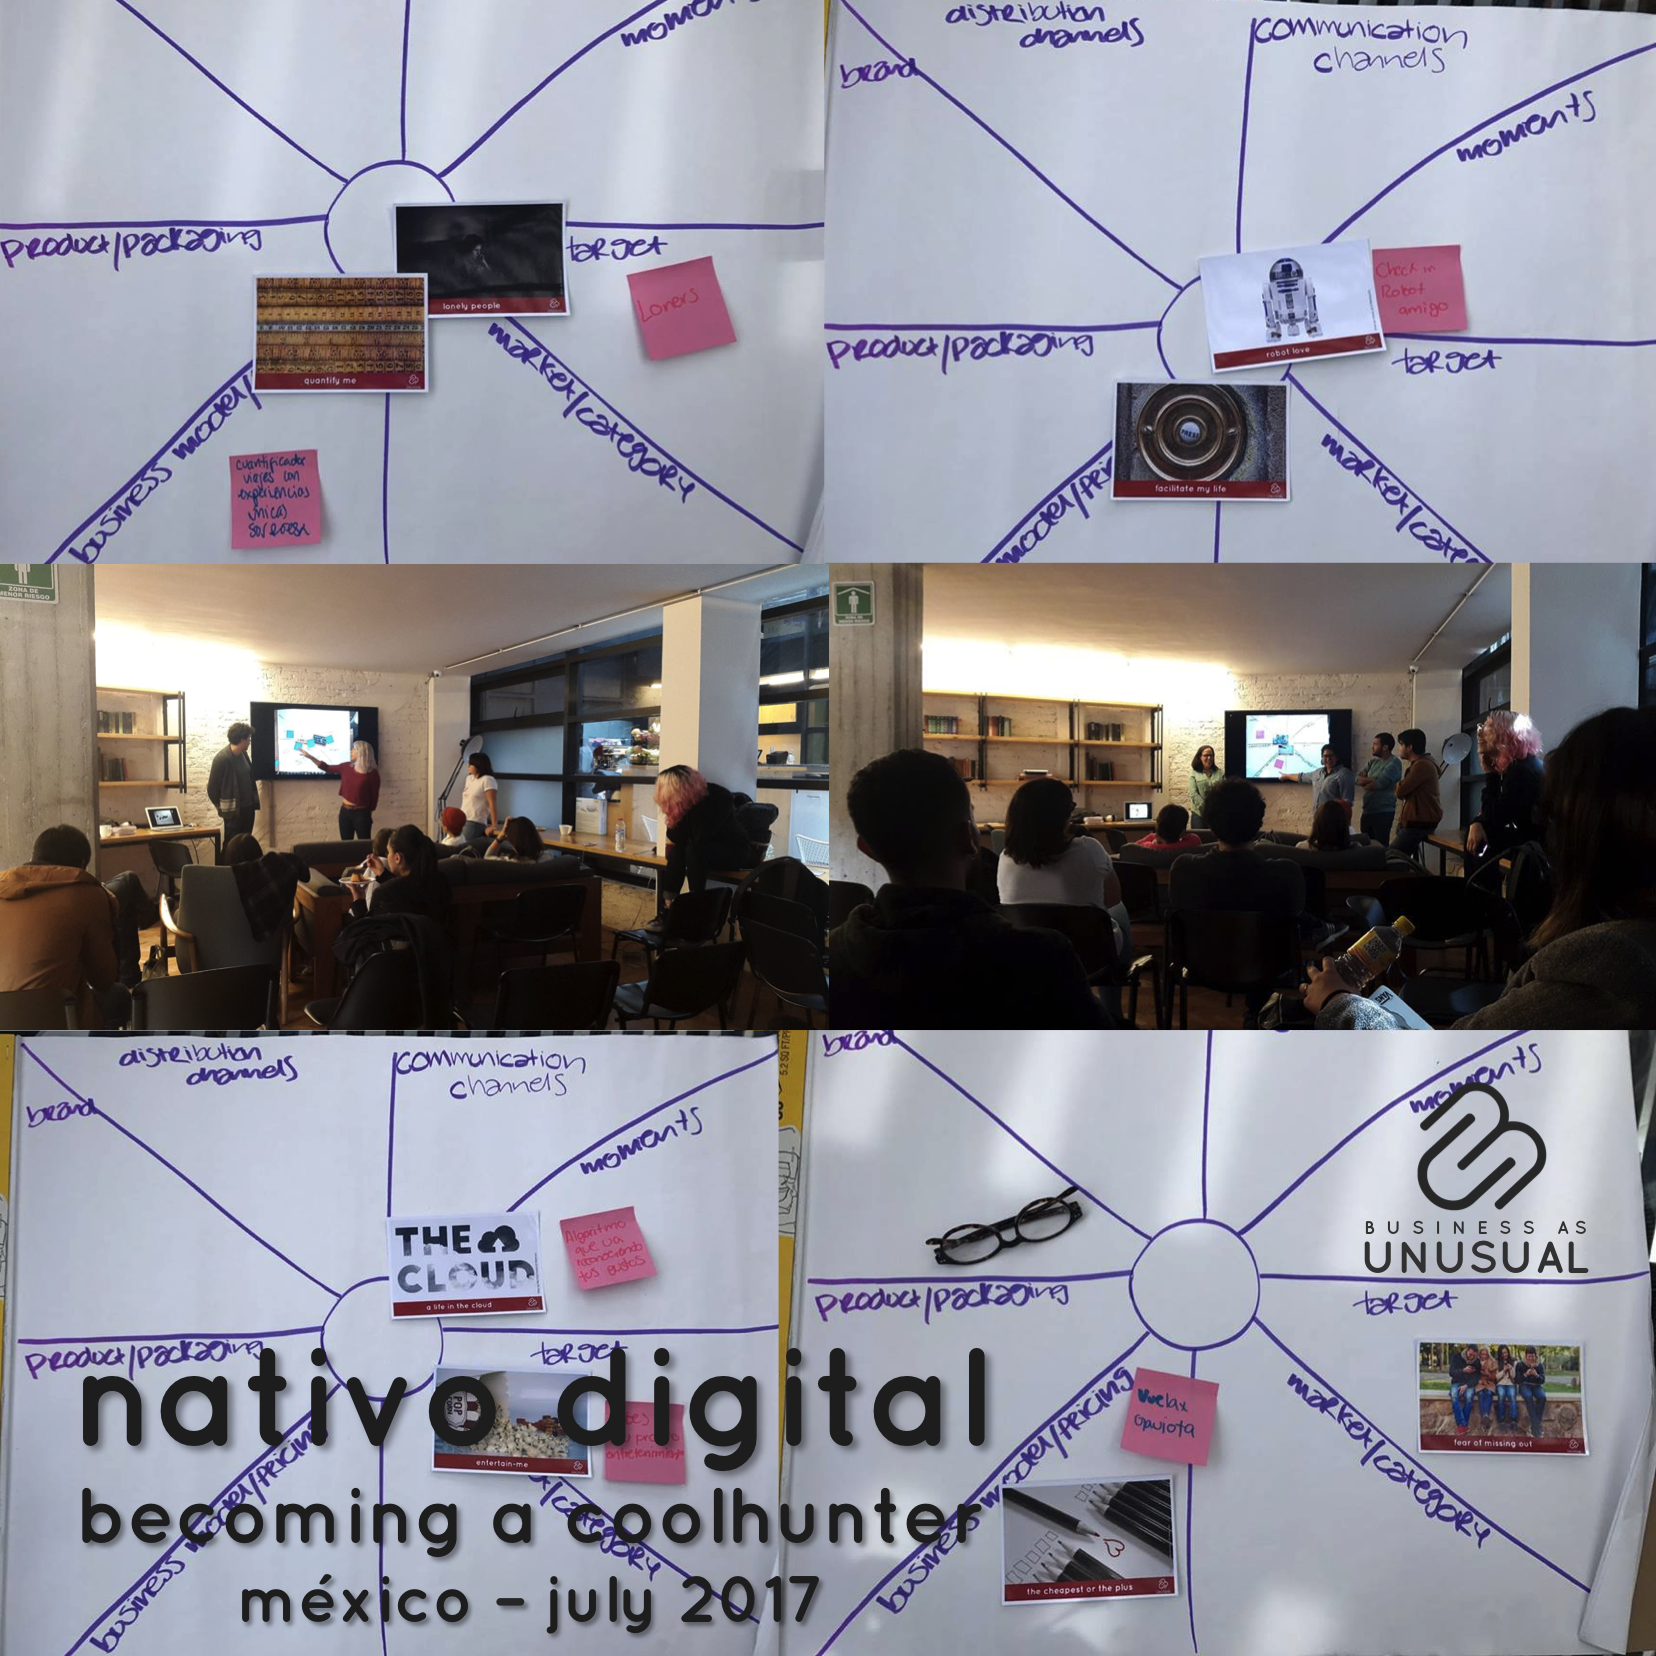 Nativo Digital - Becoming a Coolhunter